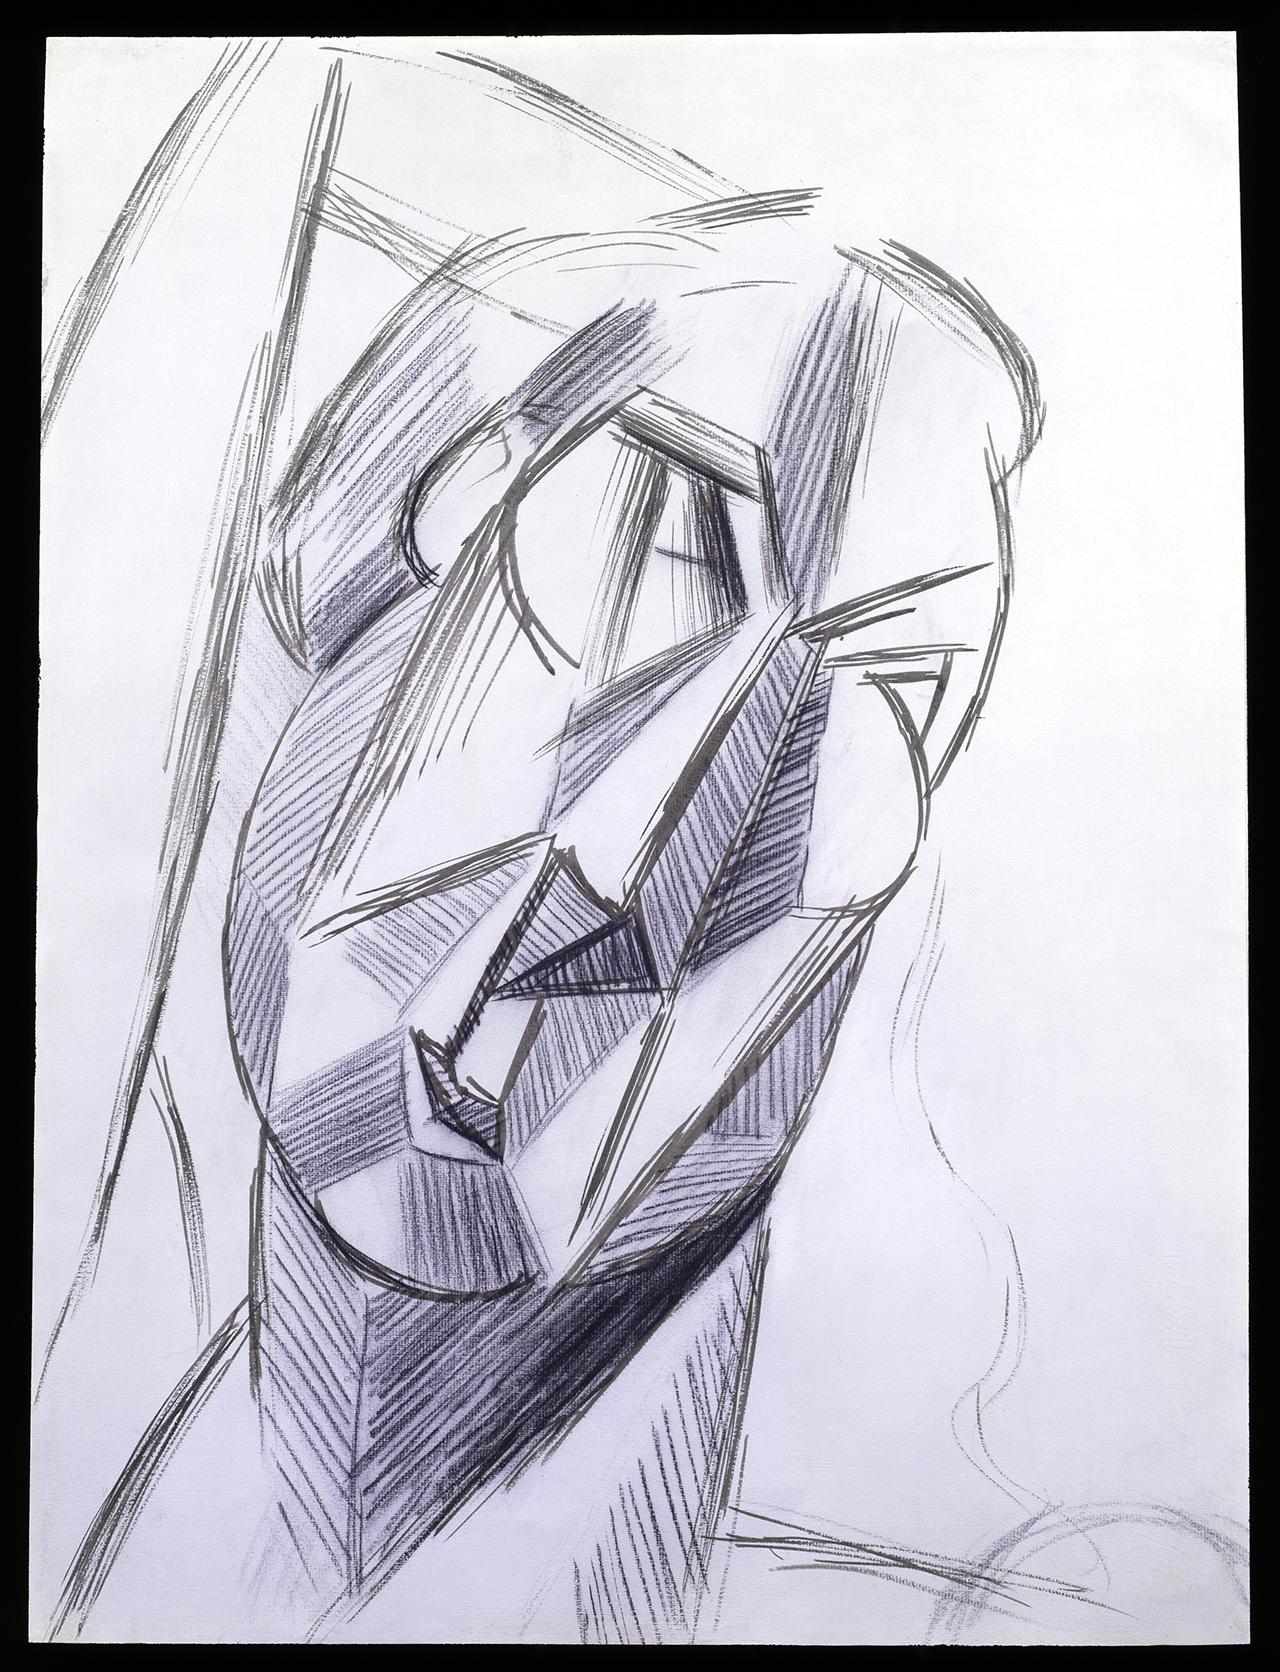 """Pablo Picasso, """"Tete (Head of Fernande)"""" (1909), gouache and pencil on paper, 24 1/2 x 18 1/4 in. (62.2 x 46.4cm) (©2014 Estate of Pablo Picasso/Artists Rights Society, NY) (click to enlarge)"""